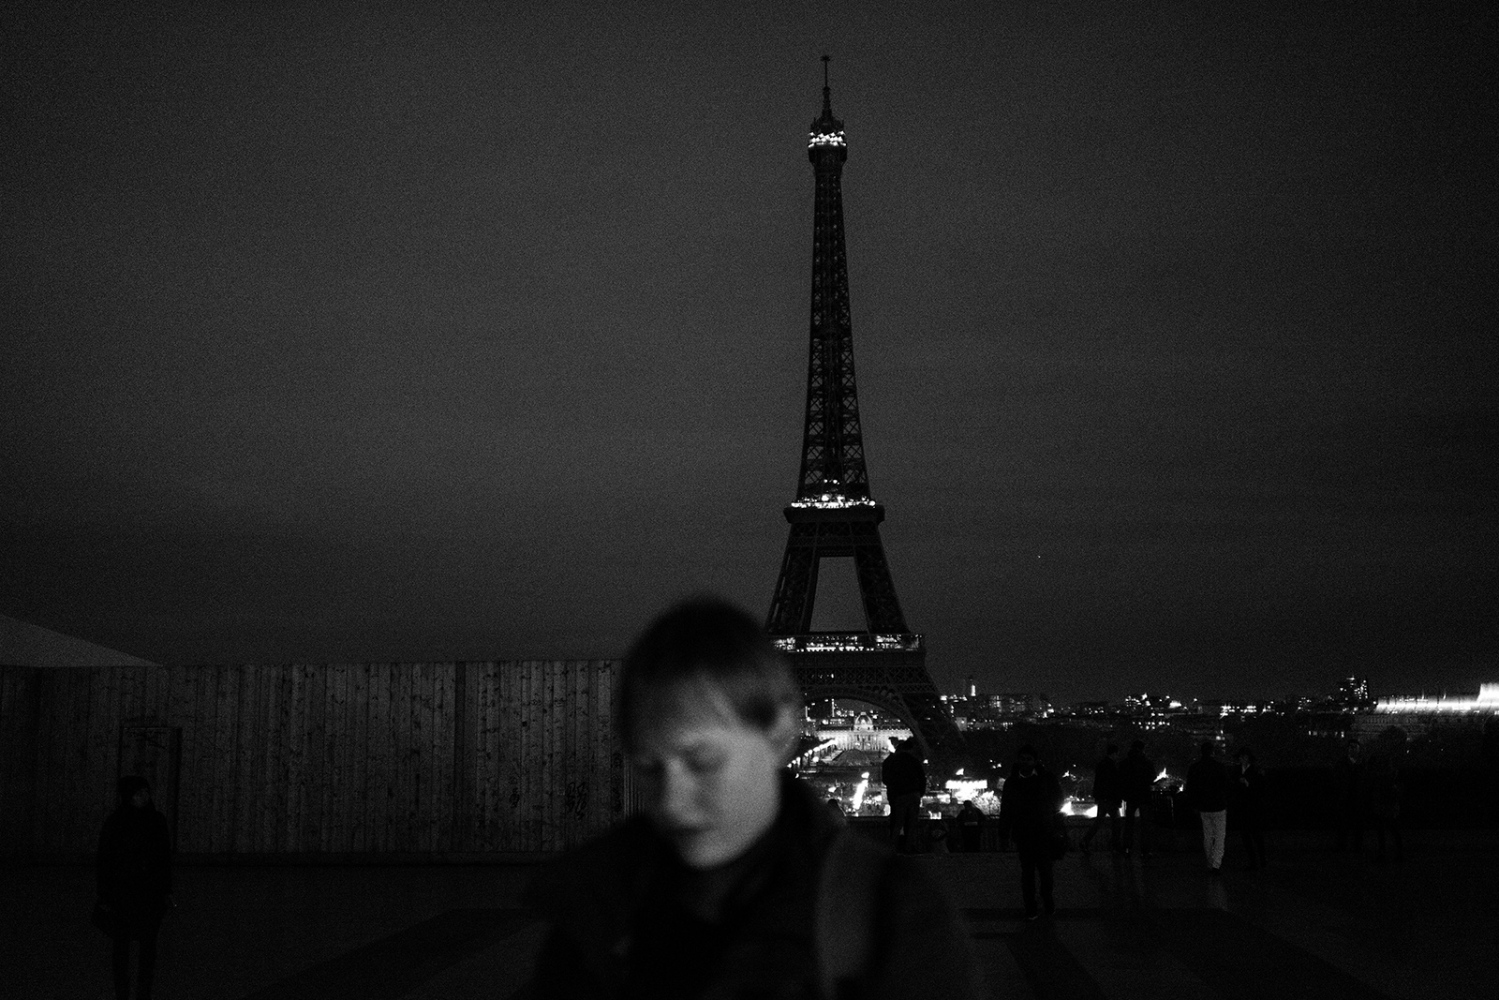 Eiffel Tower turns out its lights as mark of respect to victims. Paris, France, Place du TrocadÈro et du 11 Novembre. 14.11.2015.The aftermath of the terrorism attacks in Paris on 13.11.2015.